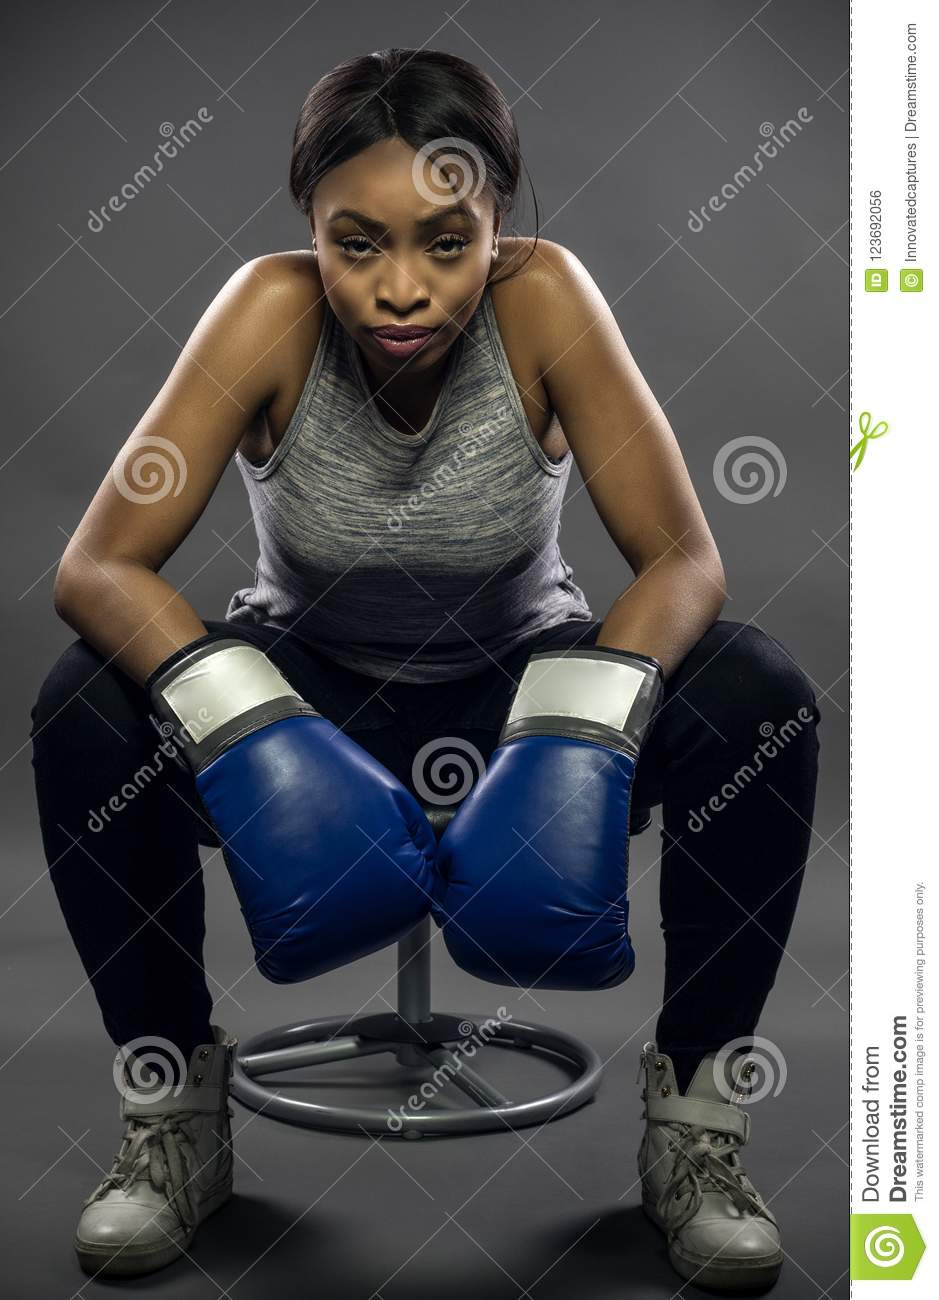 'The Ultimate Fighter': Meet contestant Angela Hill | FOX ...  |African American Mma Fighters